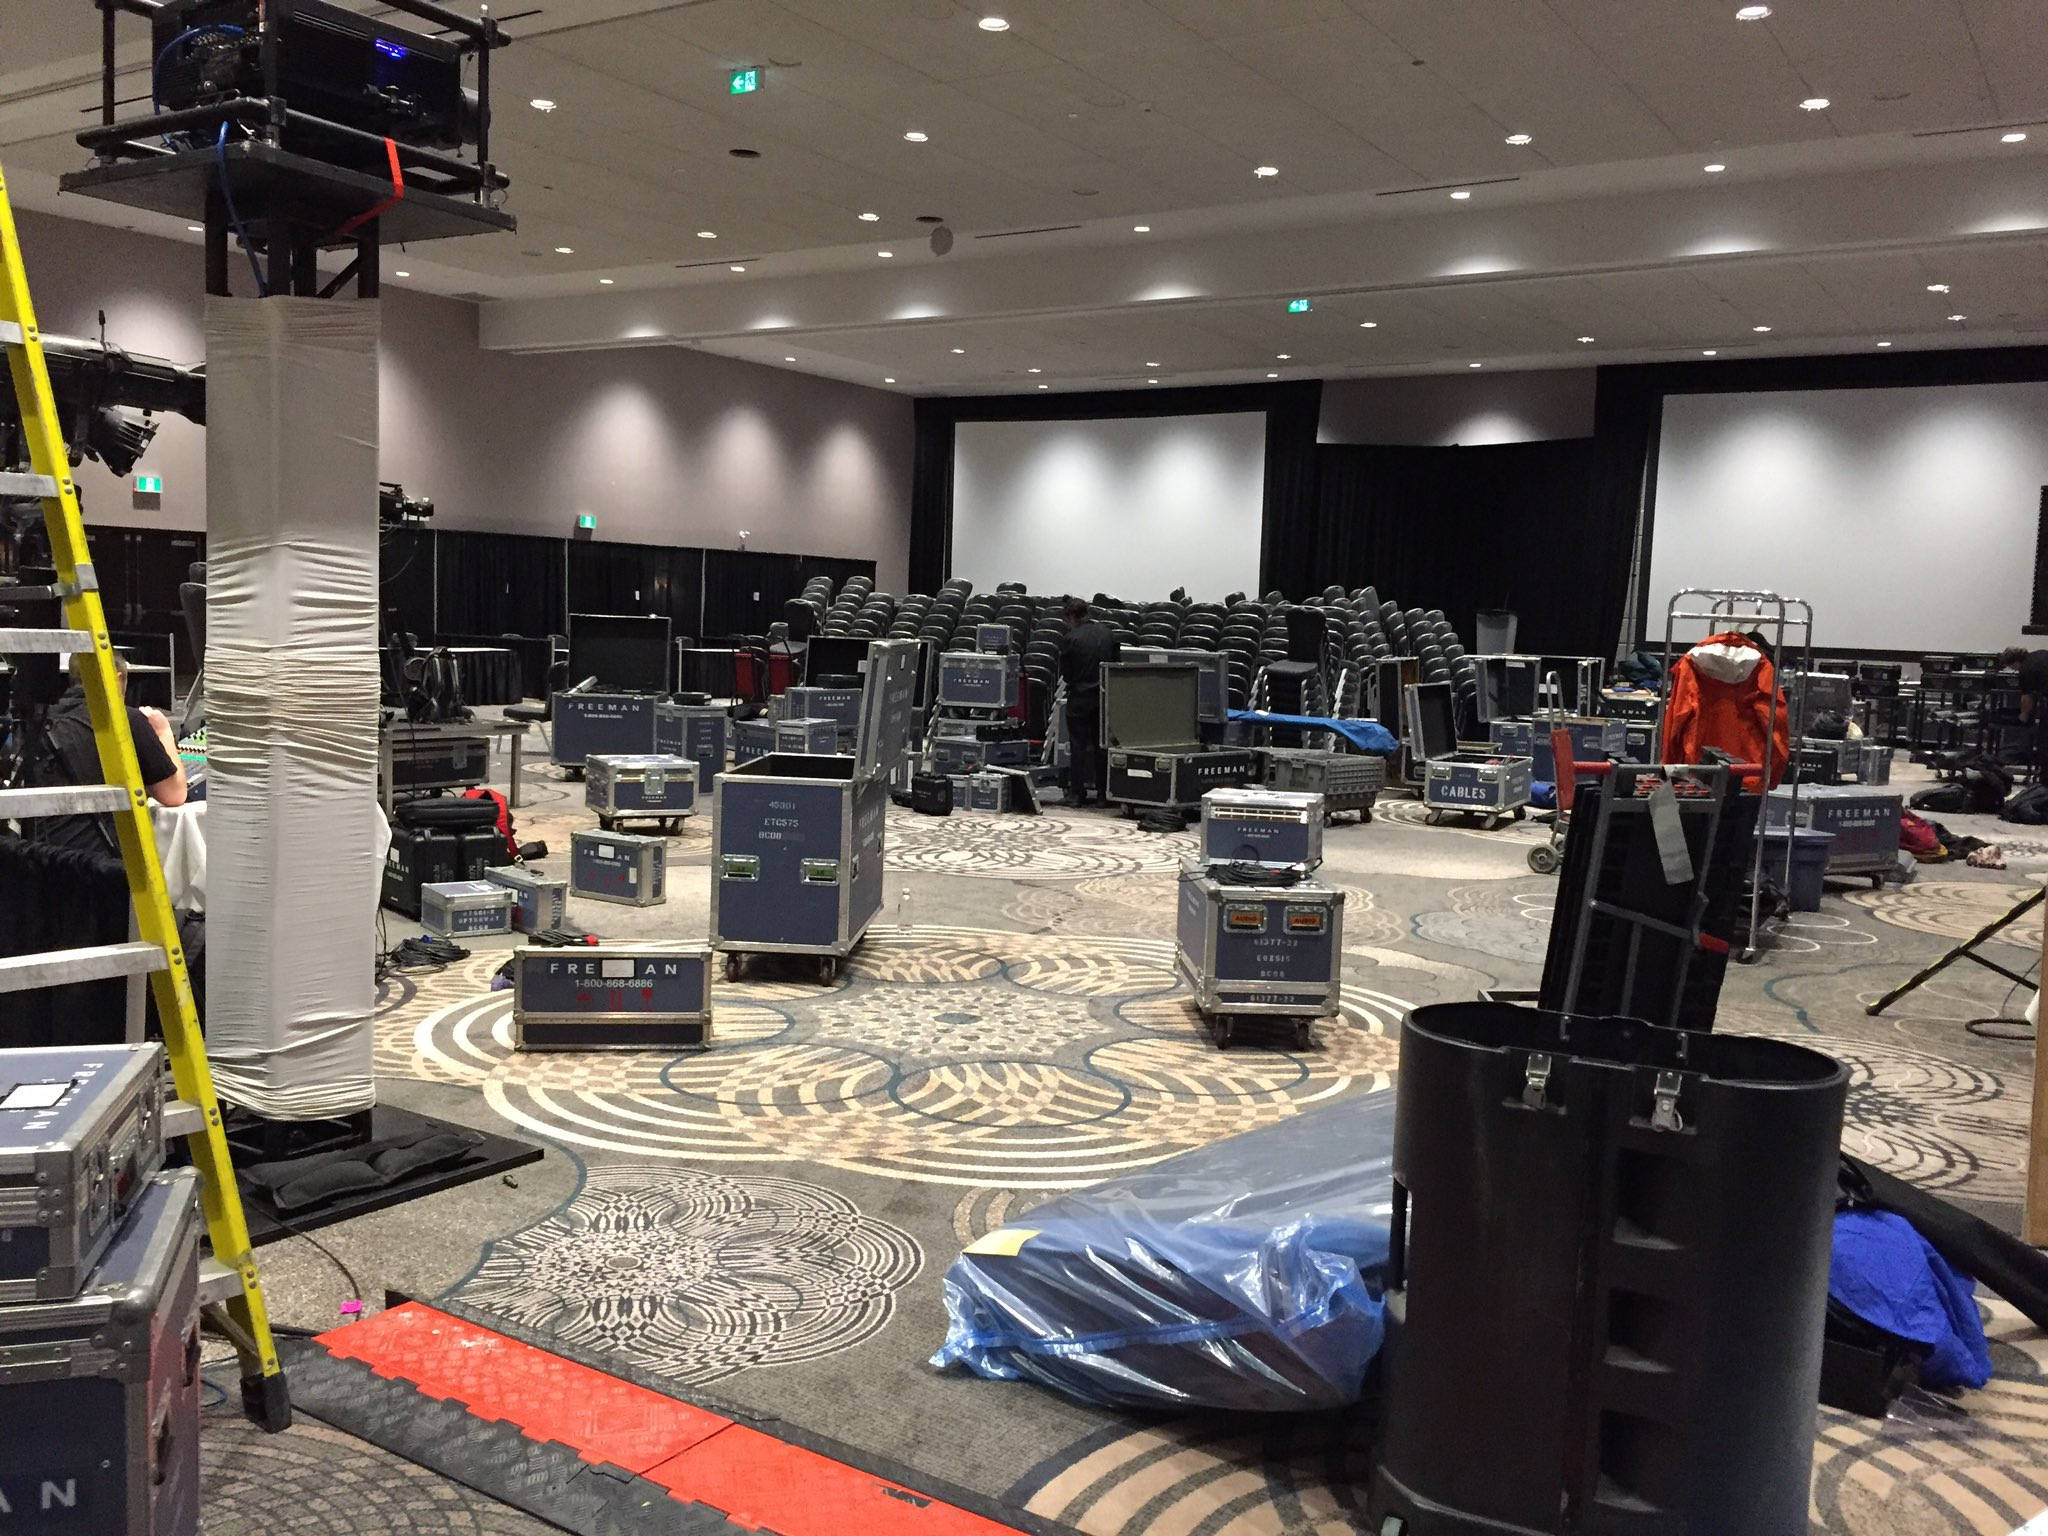 BEHIND THE SCENES: We're almost ready #housingcentral delegates - are you? Get ready for 3 days of education and networking! https://t.co/1Fl2v0cVFo